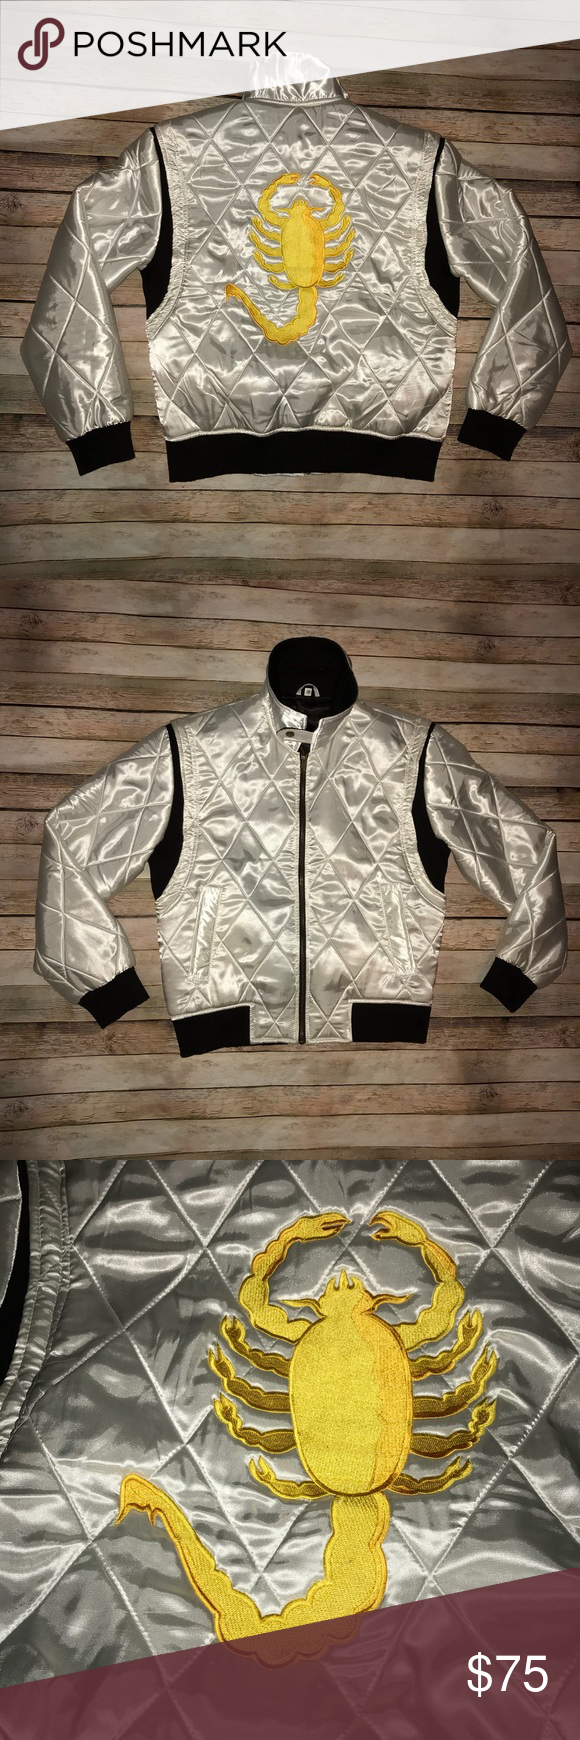 Official Ryan Gosling Drive Scorpion Jacket Size M Official Ryan Gosling Drive Scorpion Jacket Size M Vintage Ja Ryan Gosling Ryan Gosling Drive Things To Sell [ 1740 x 580 Pixel ]